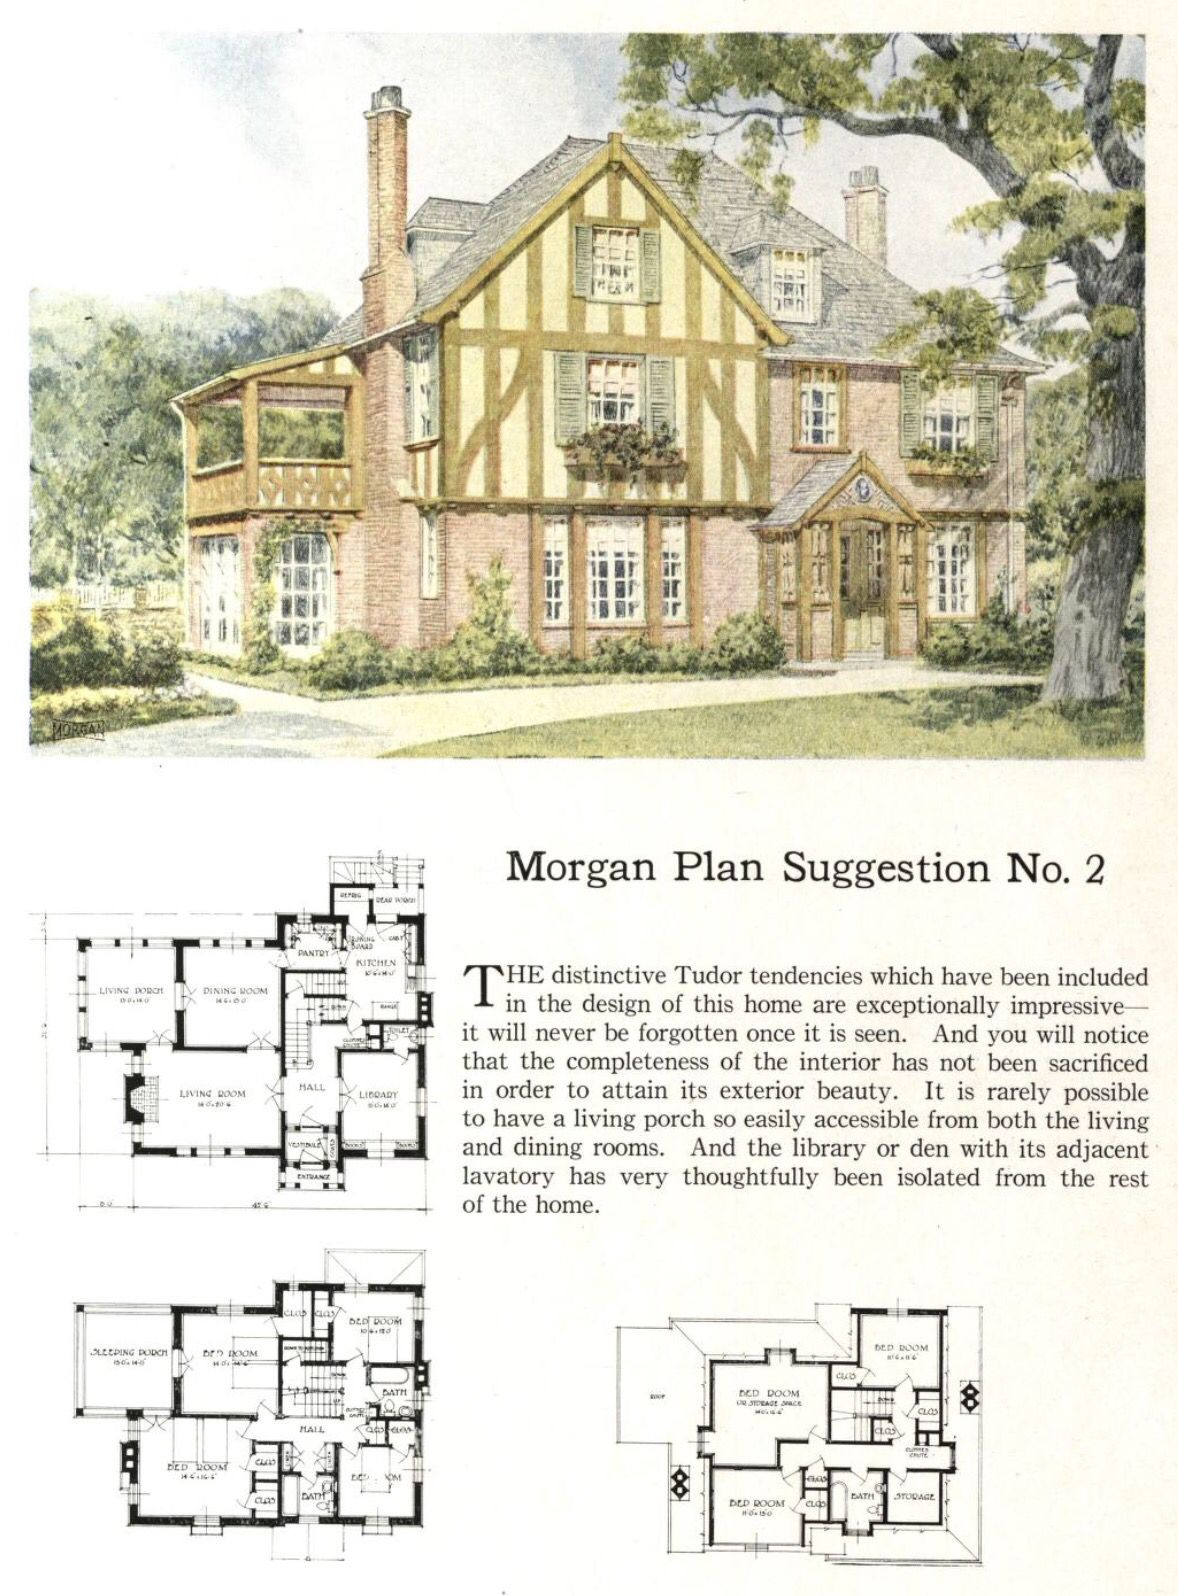 Tudor Style Home Tudor House House Plans Floor Plans